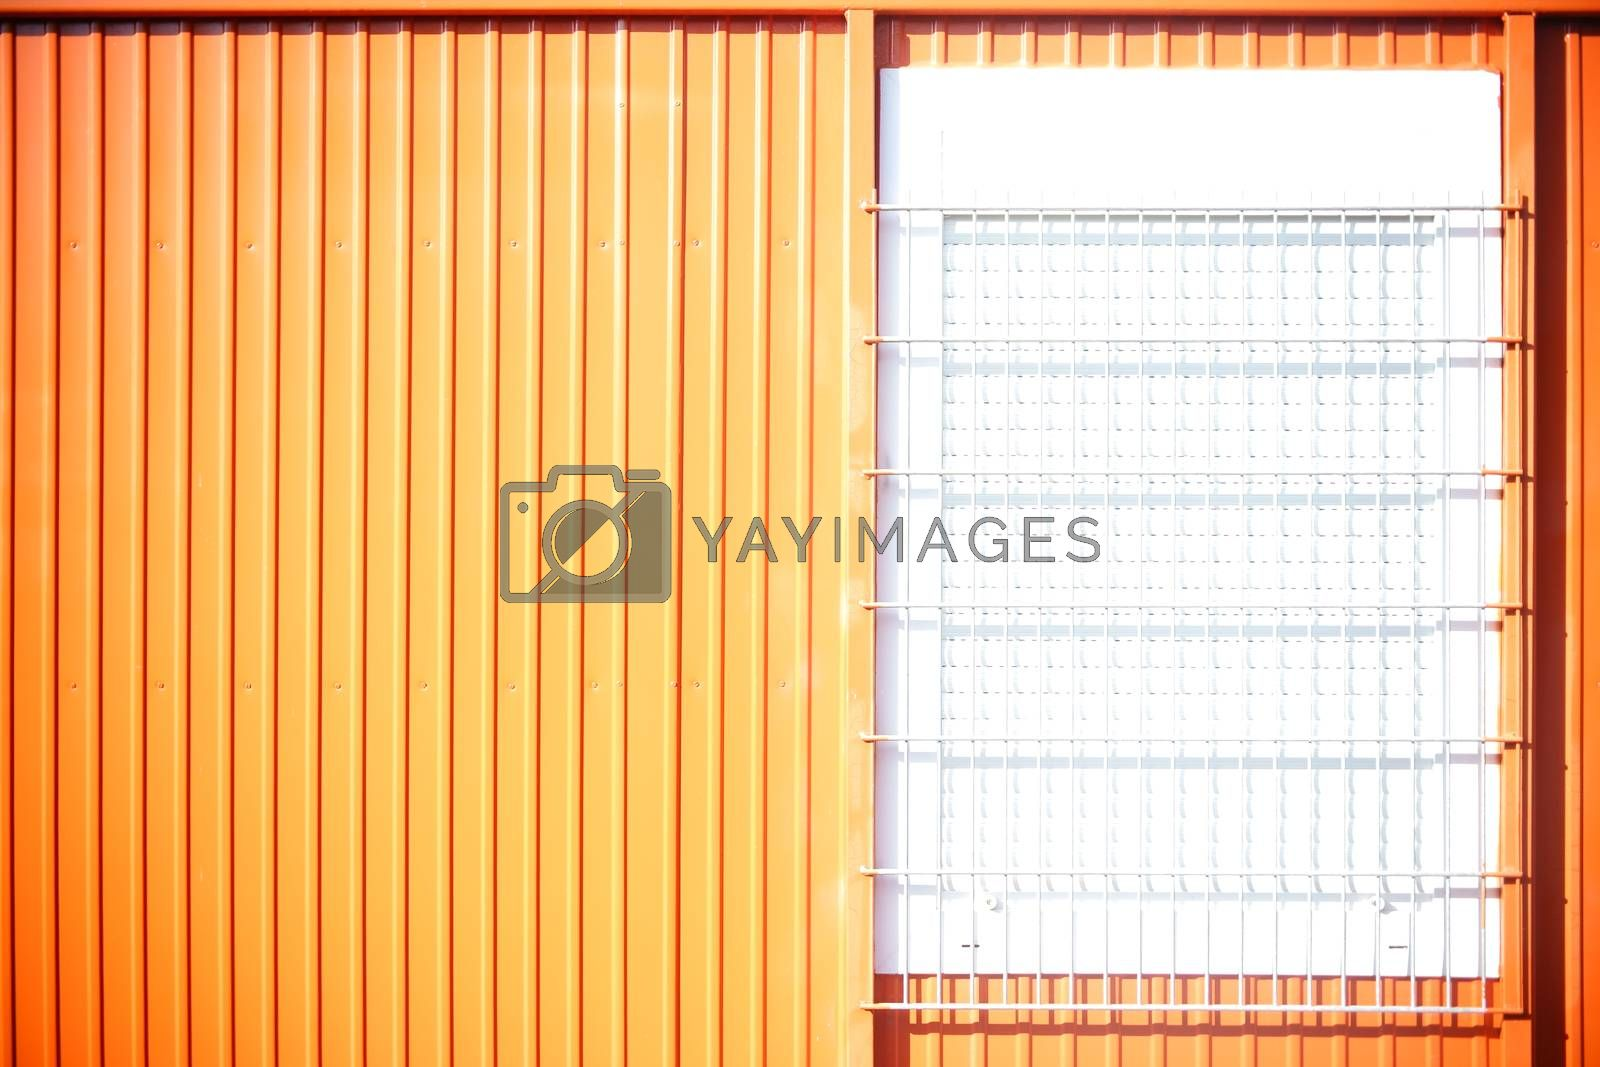 The highly luminous by strong sunlight corrugated metal wall of a Portakabin with a barred window.